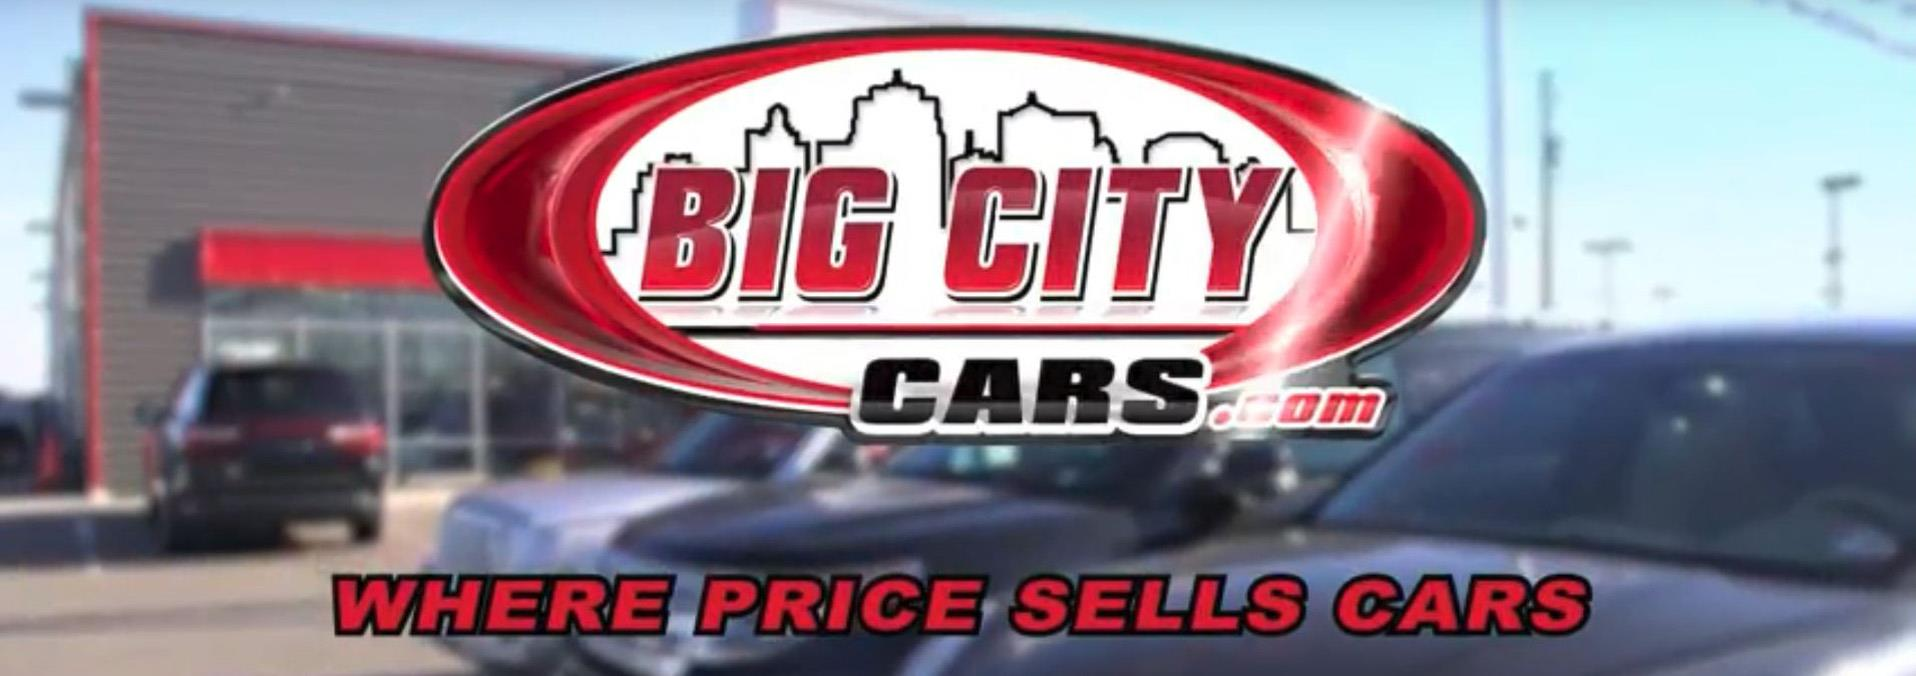 Big City Cars Fort Wayne In New Used Cars Trucks Sales Service